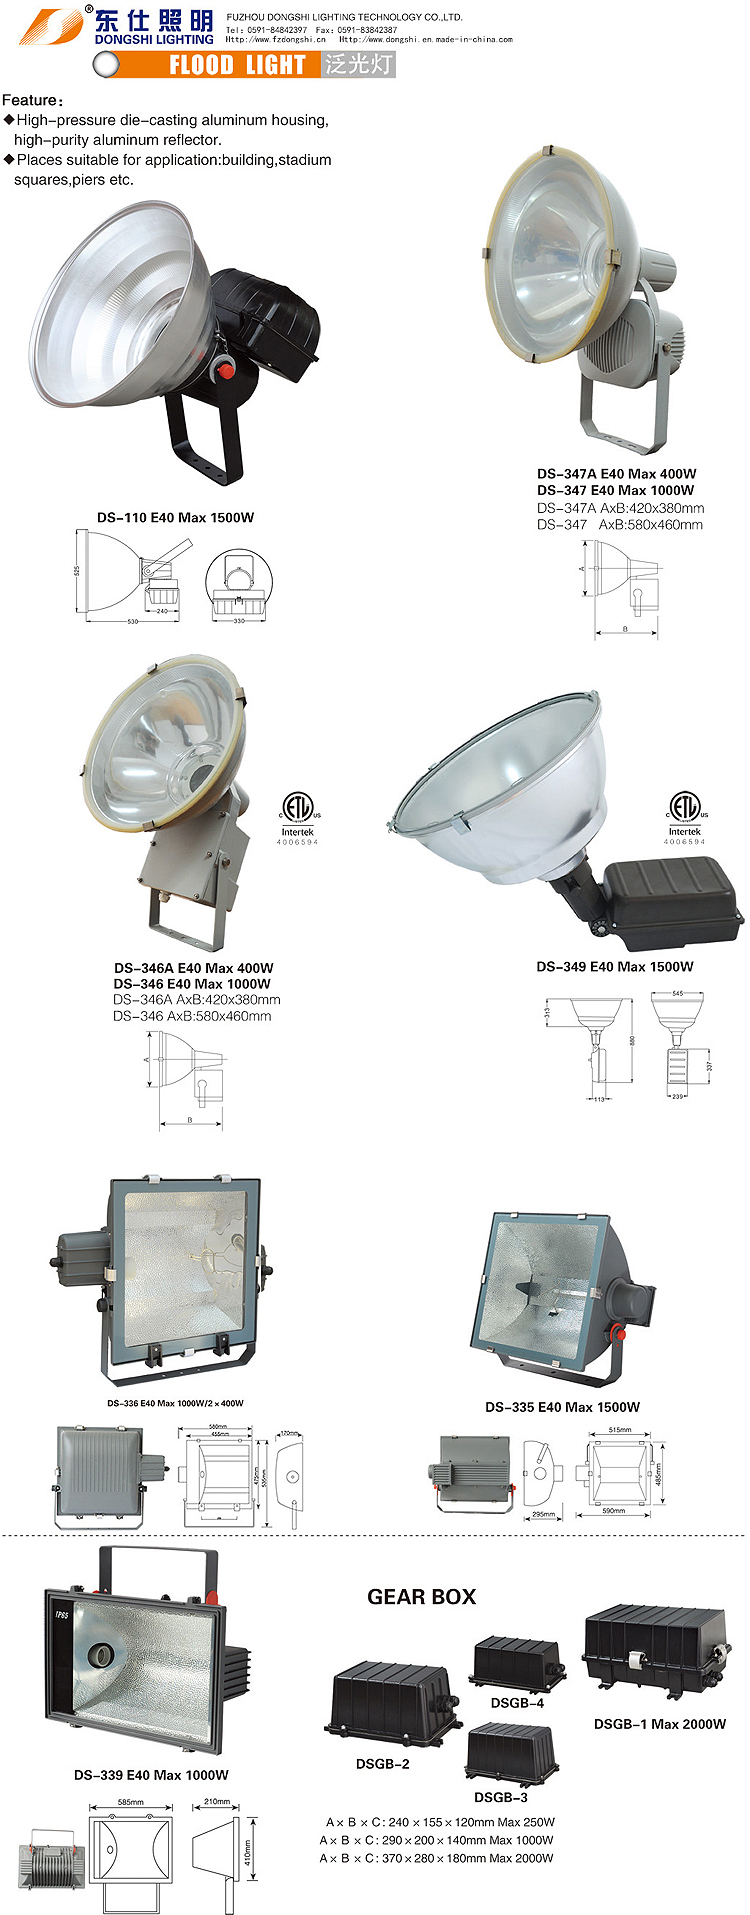 1000W metal halide architectural beam flood light with gear box